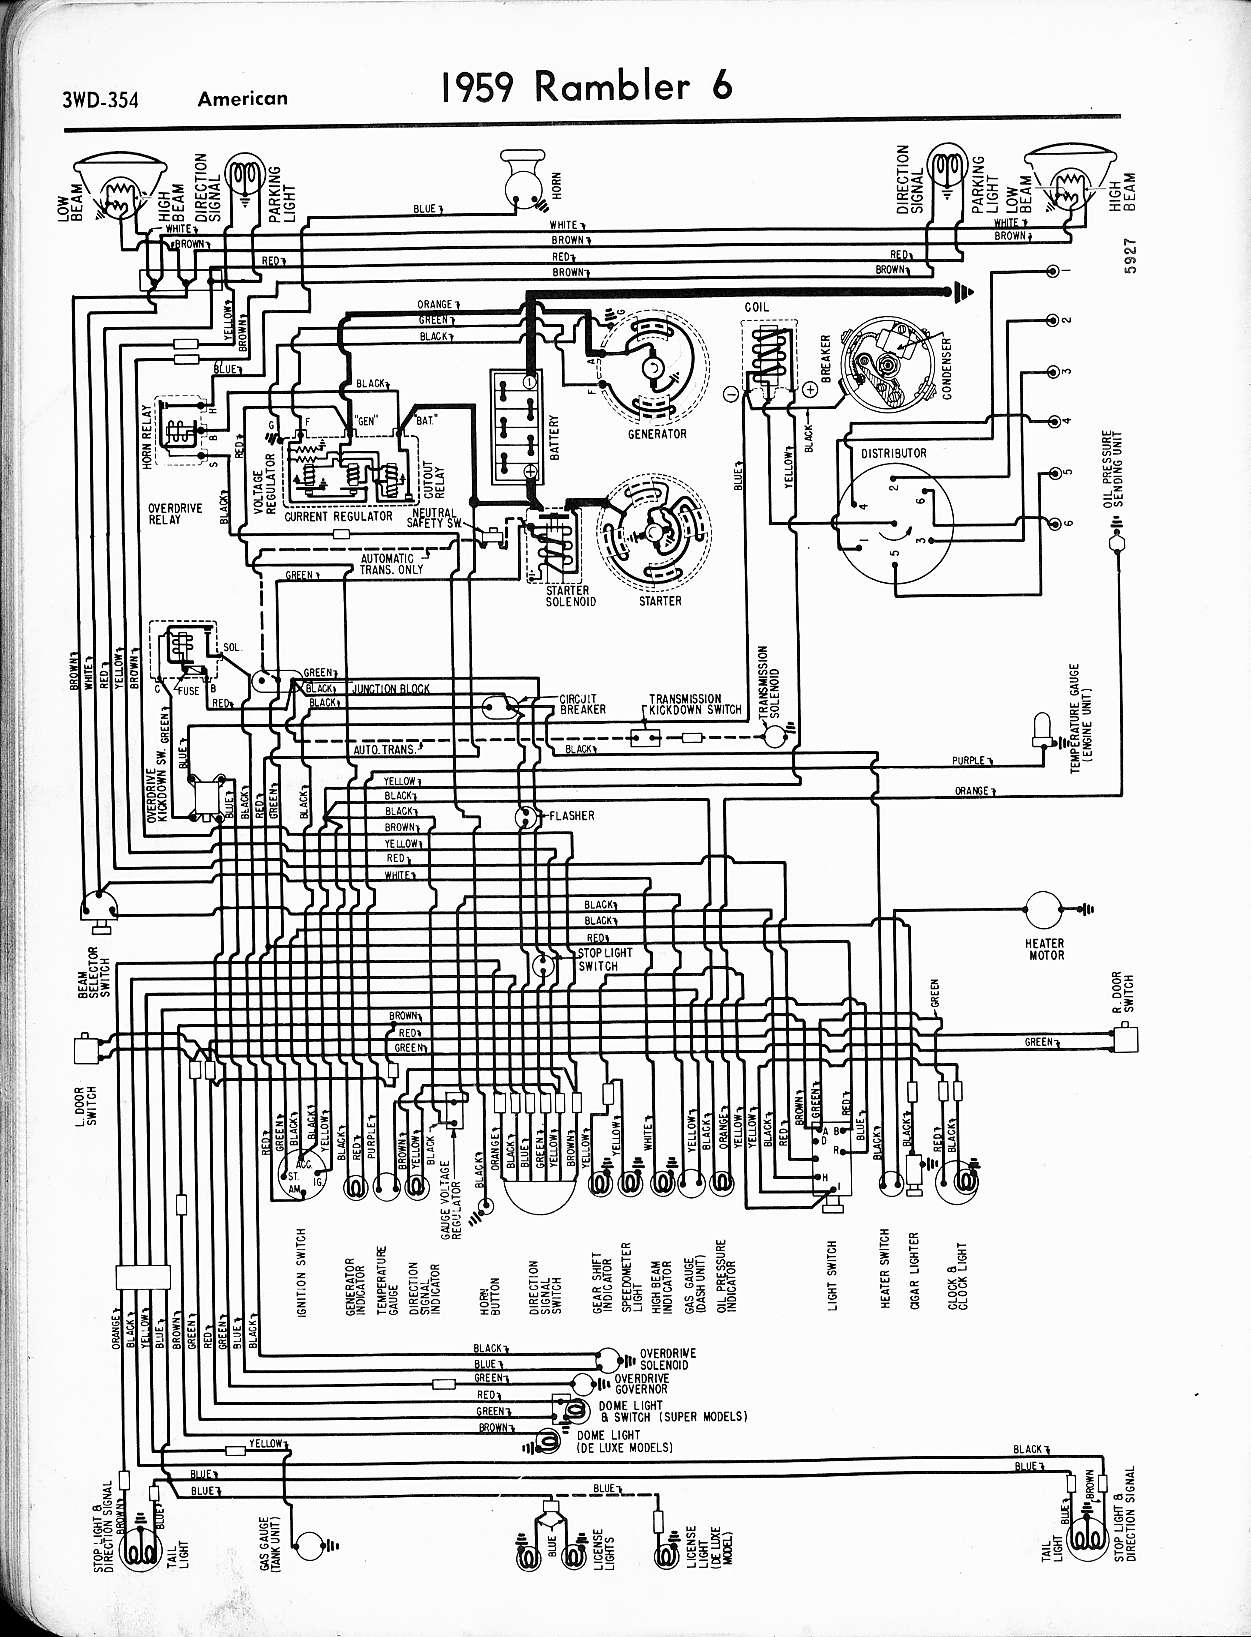 Rambler Rebel Wiring Diagram